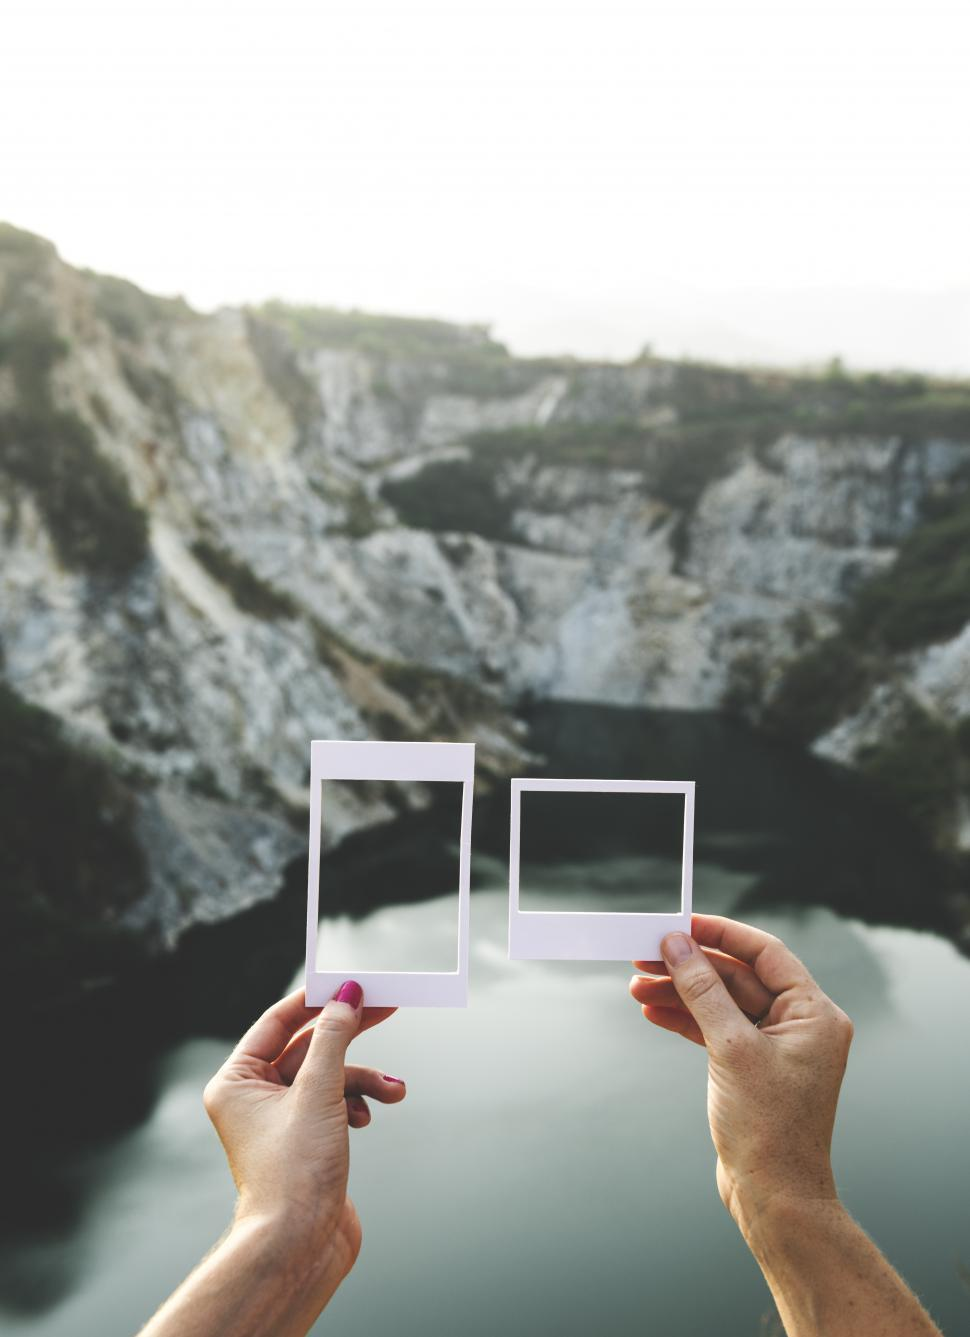 Download Free Stock HD Photo of Hands holding a photo frame shaped paper cut out templates in front of mountains Online